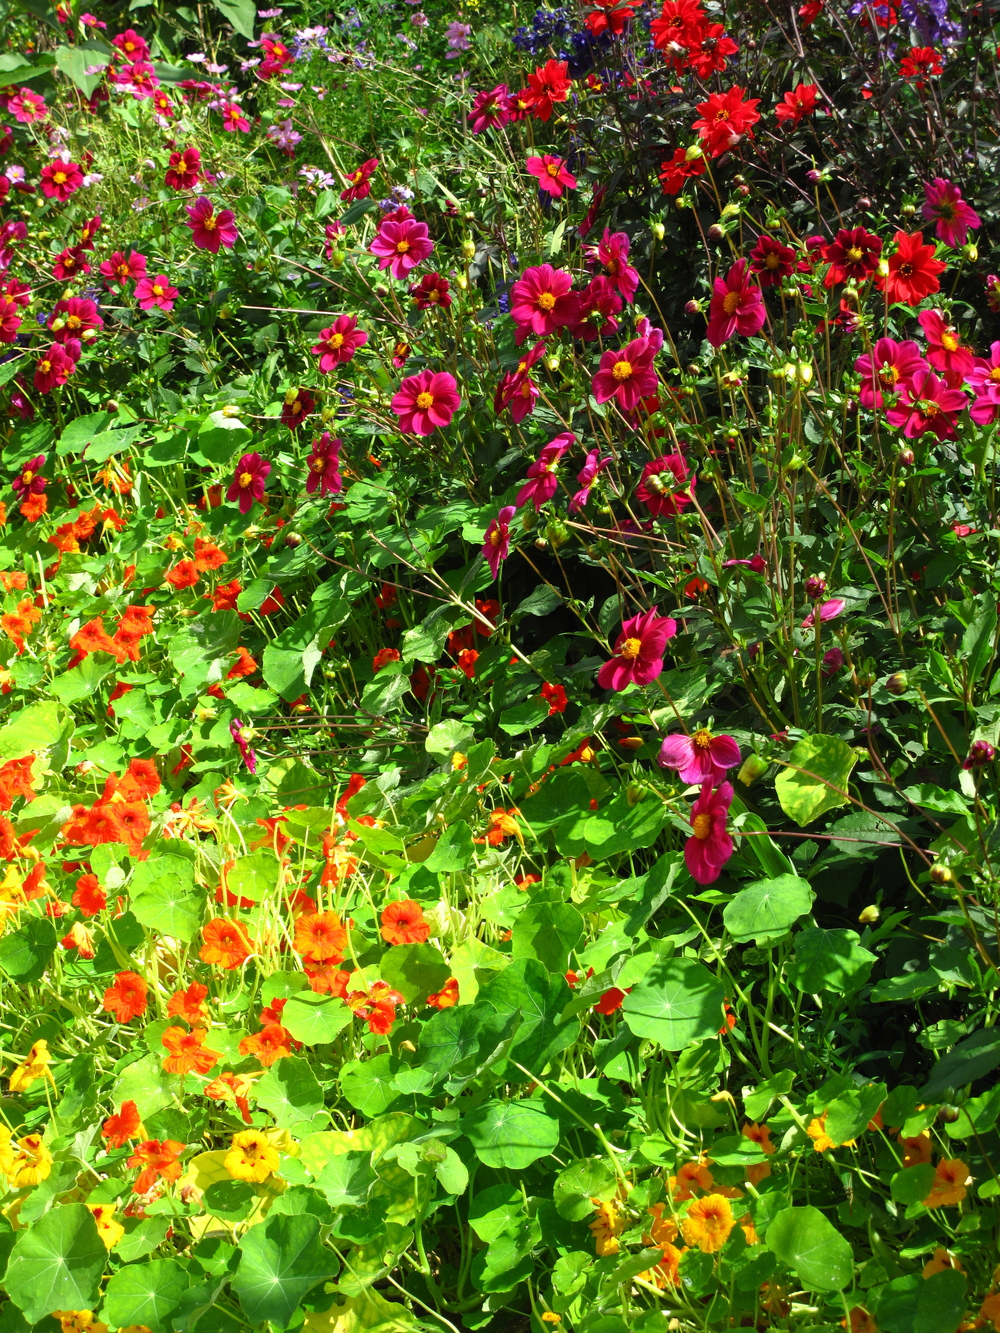 Bright flowers - Giverny in summer time - oranges, pinks and reds.